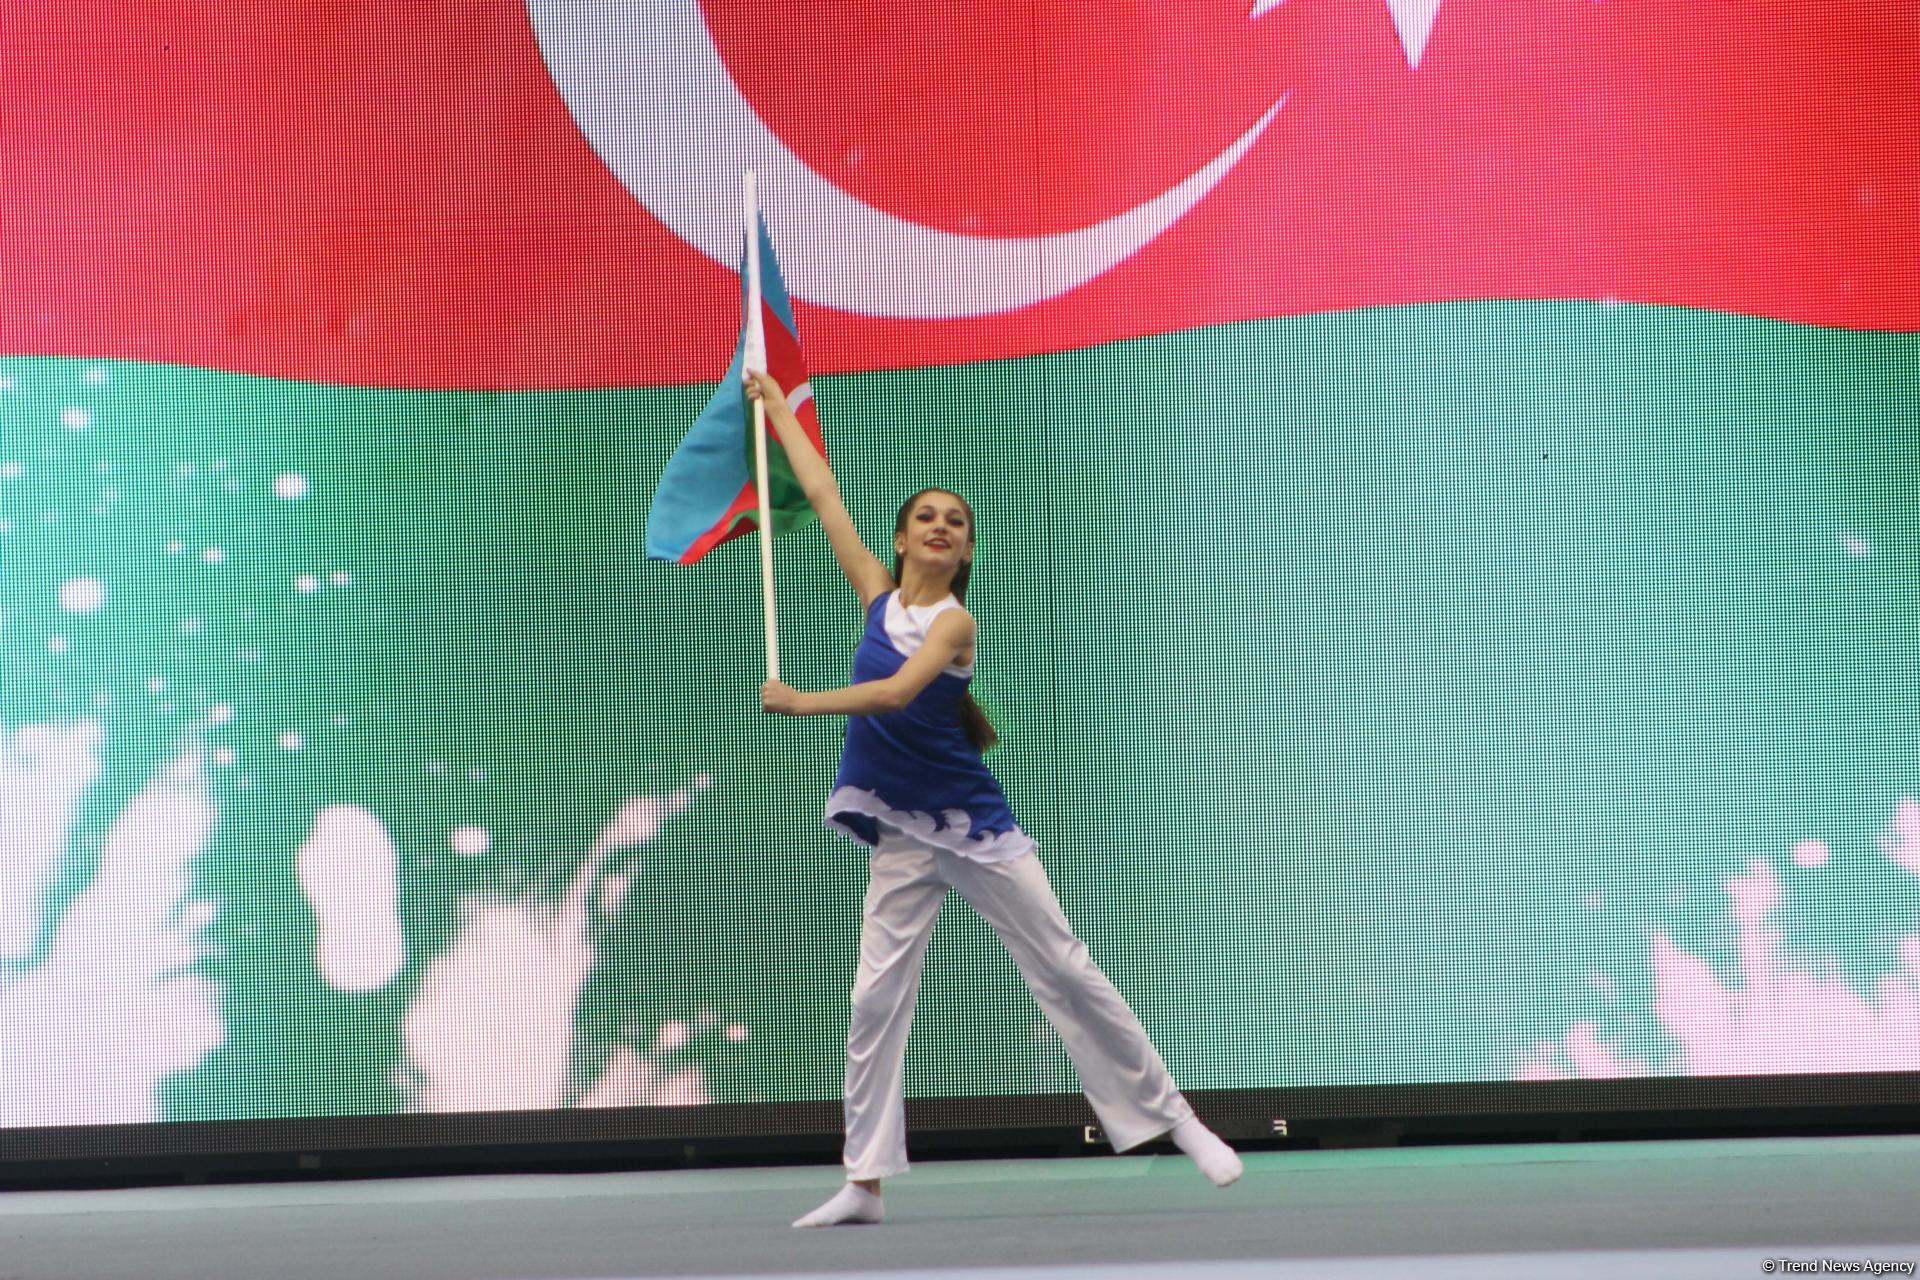 Opening ceremony of FIG Artistic Gymnastics Individual Apparatus World Cup held in Baku (PHOTO)